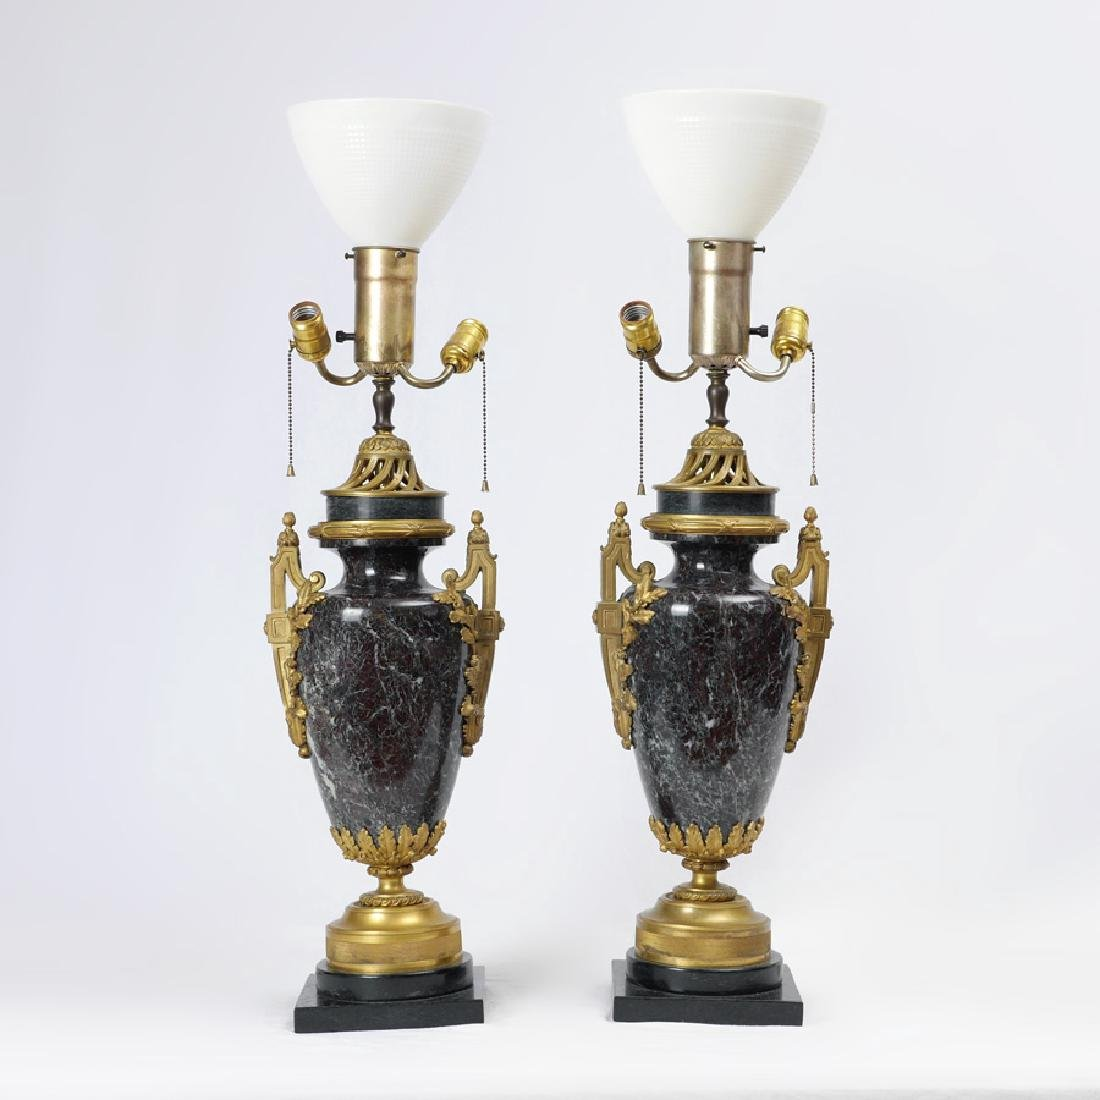 PAIR LOUIS XV STYLE GILT BRONZE MARBLE TABLE LAMPS